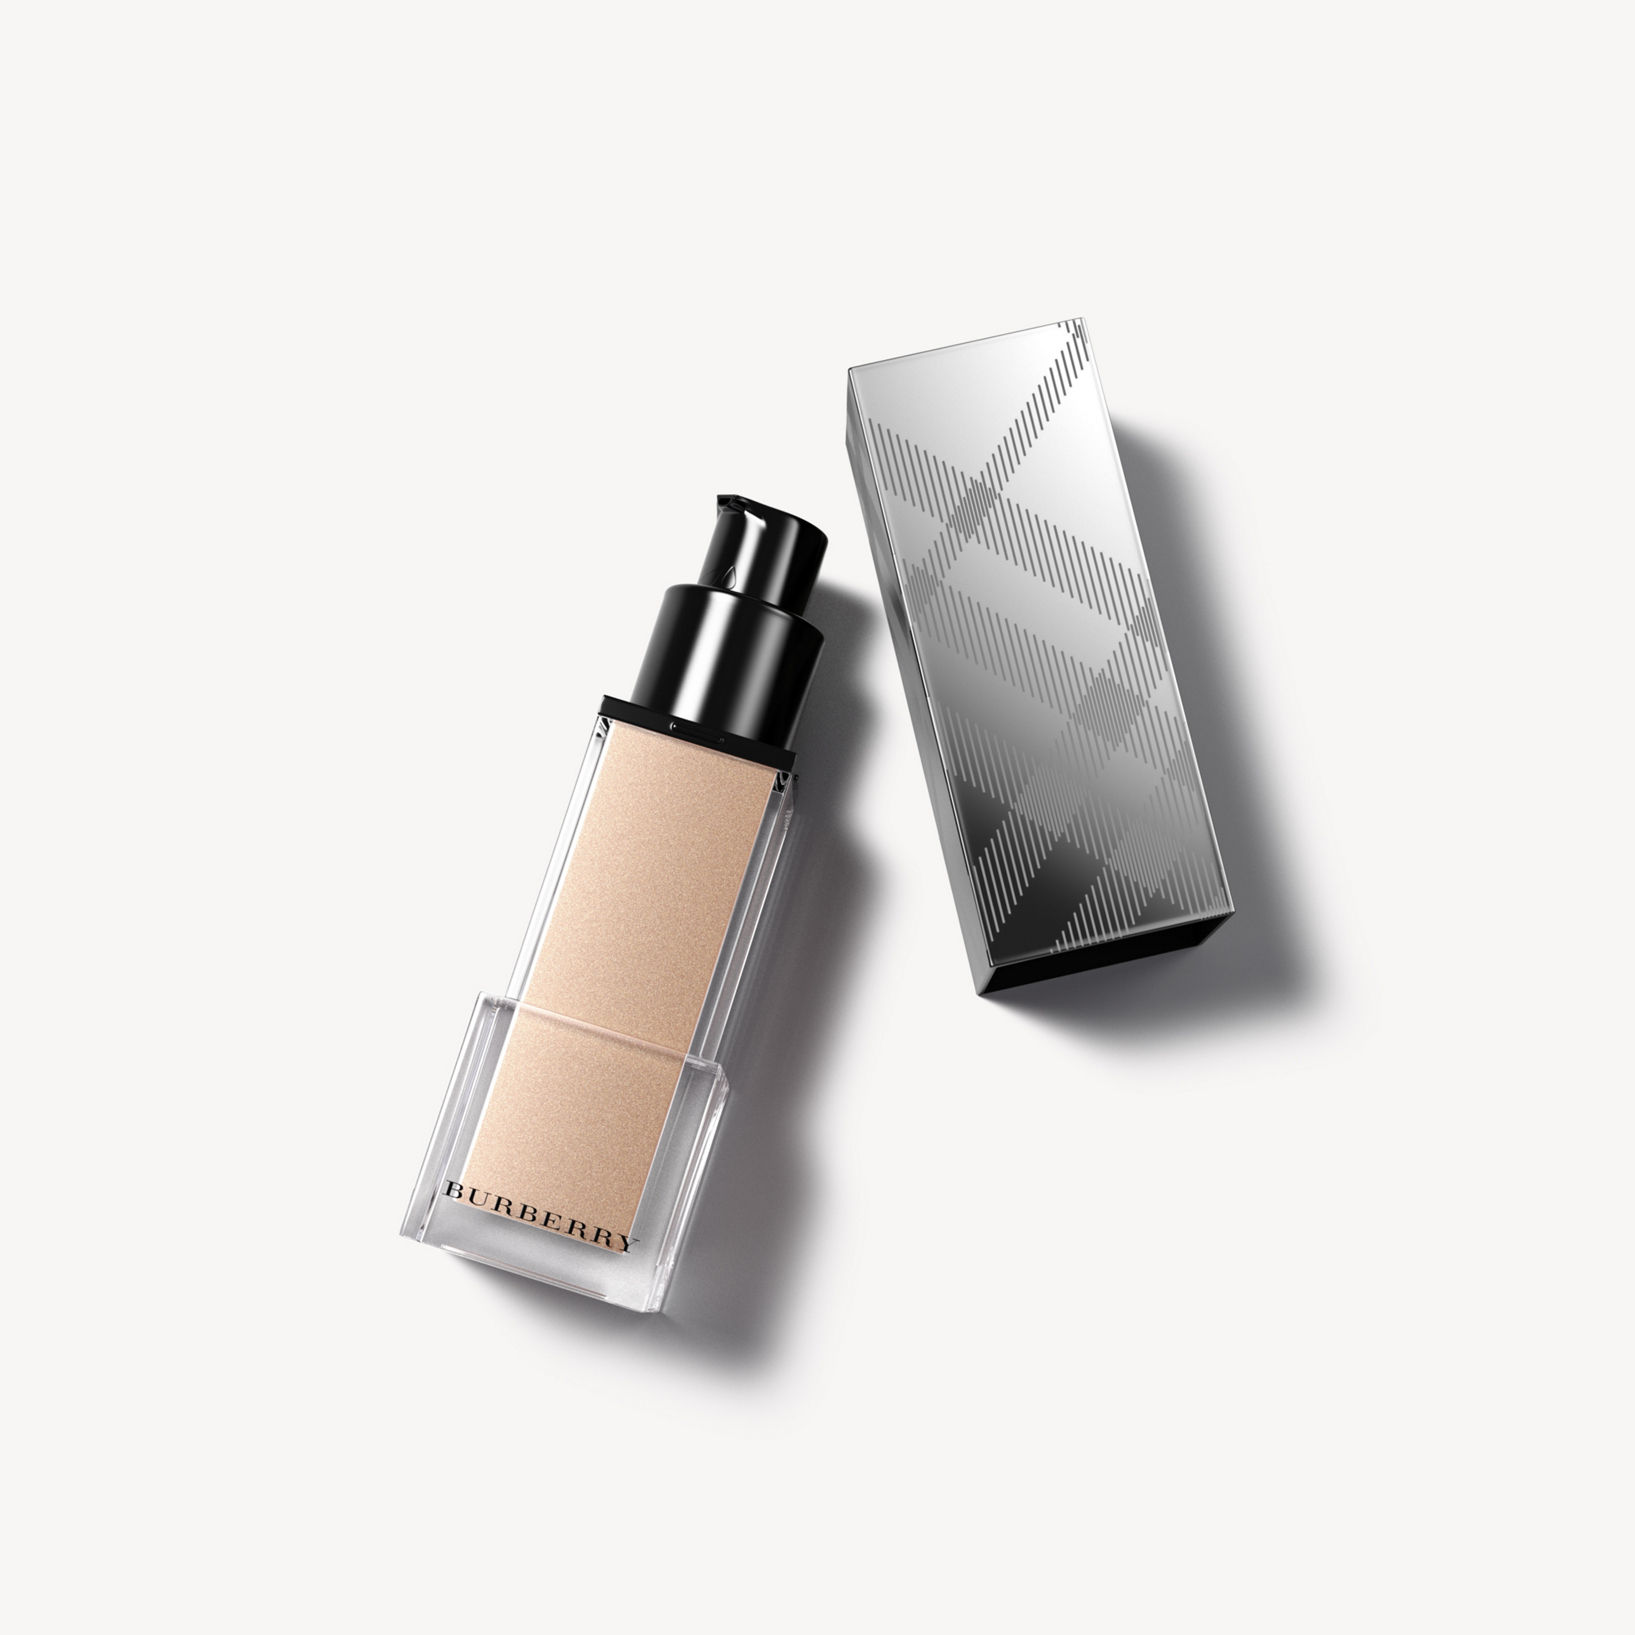 Burberry Fresh Glow Luminous Fluid, 1oz $48.00